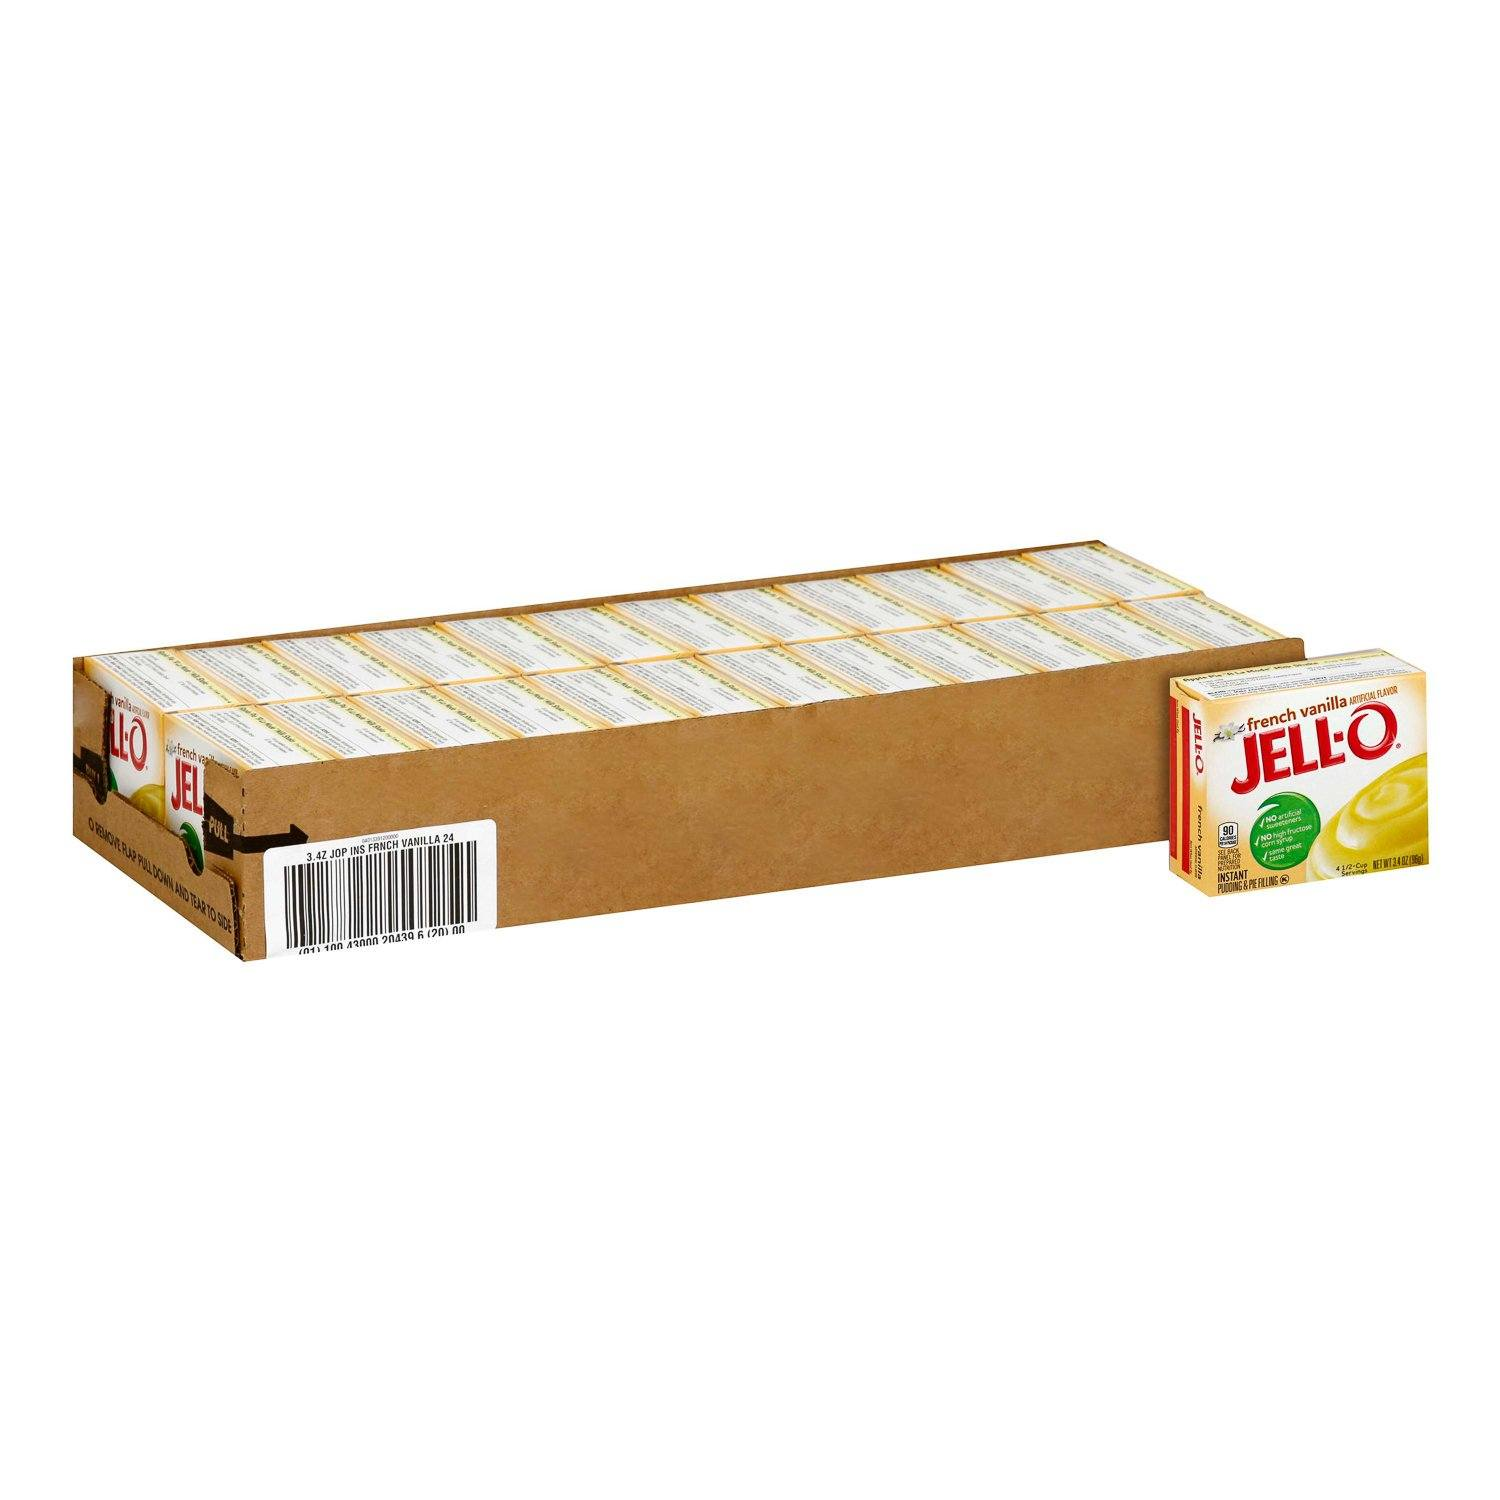 Jell-O Instant Pudding & Pie Filling Mixes Jell-O French Vanilla 3.4 Oz-24 Count